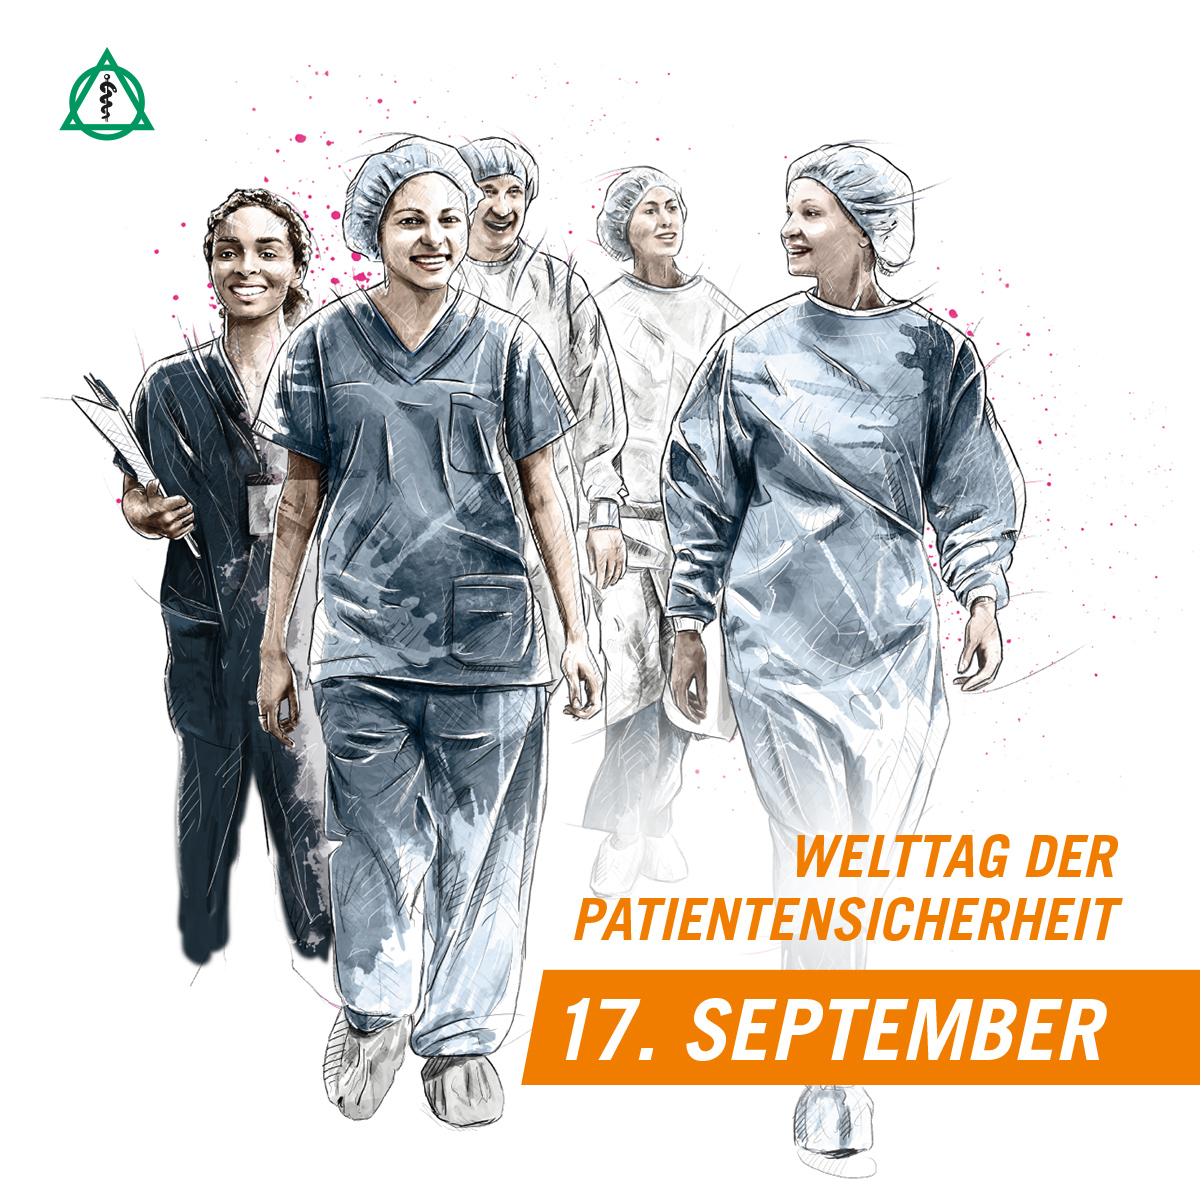 Tag der Patientensicherheit 2020